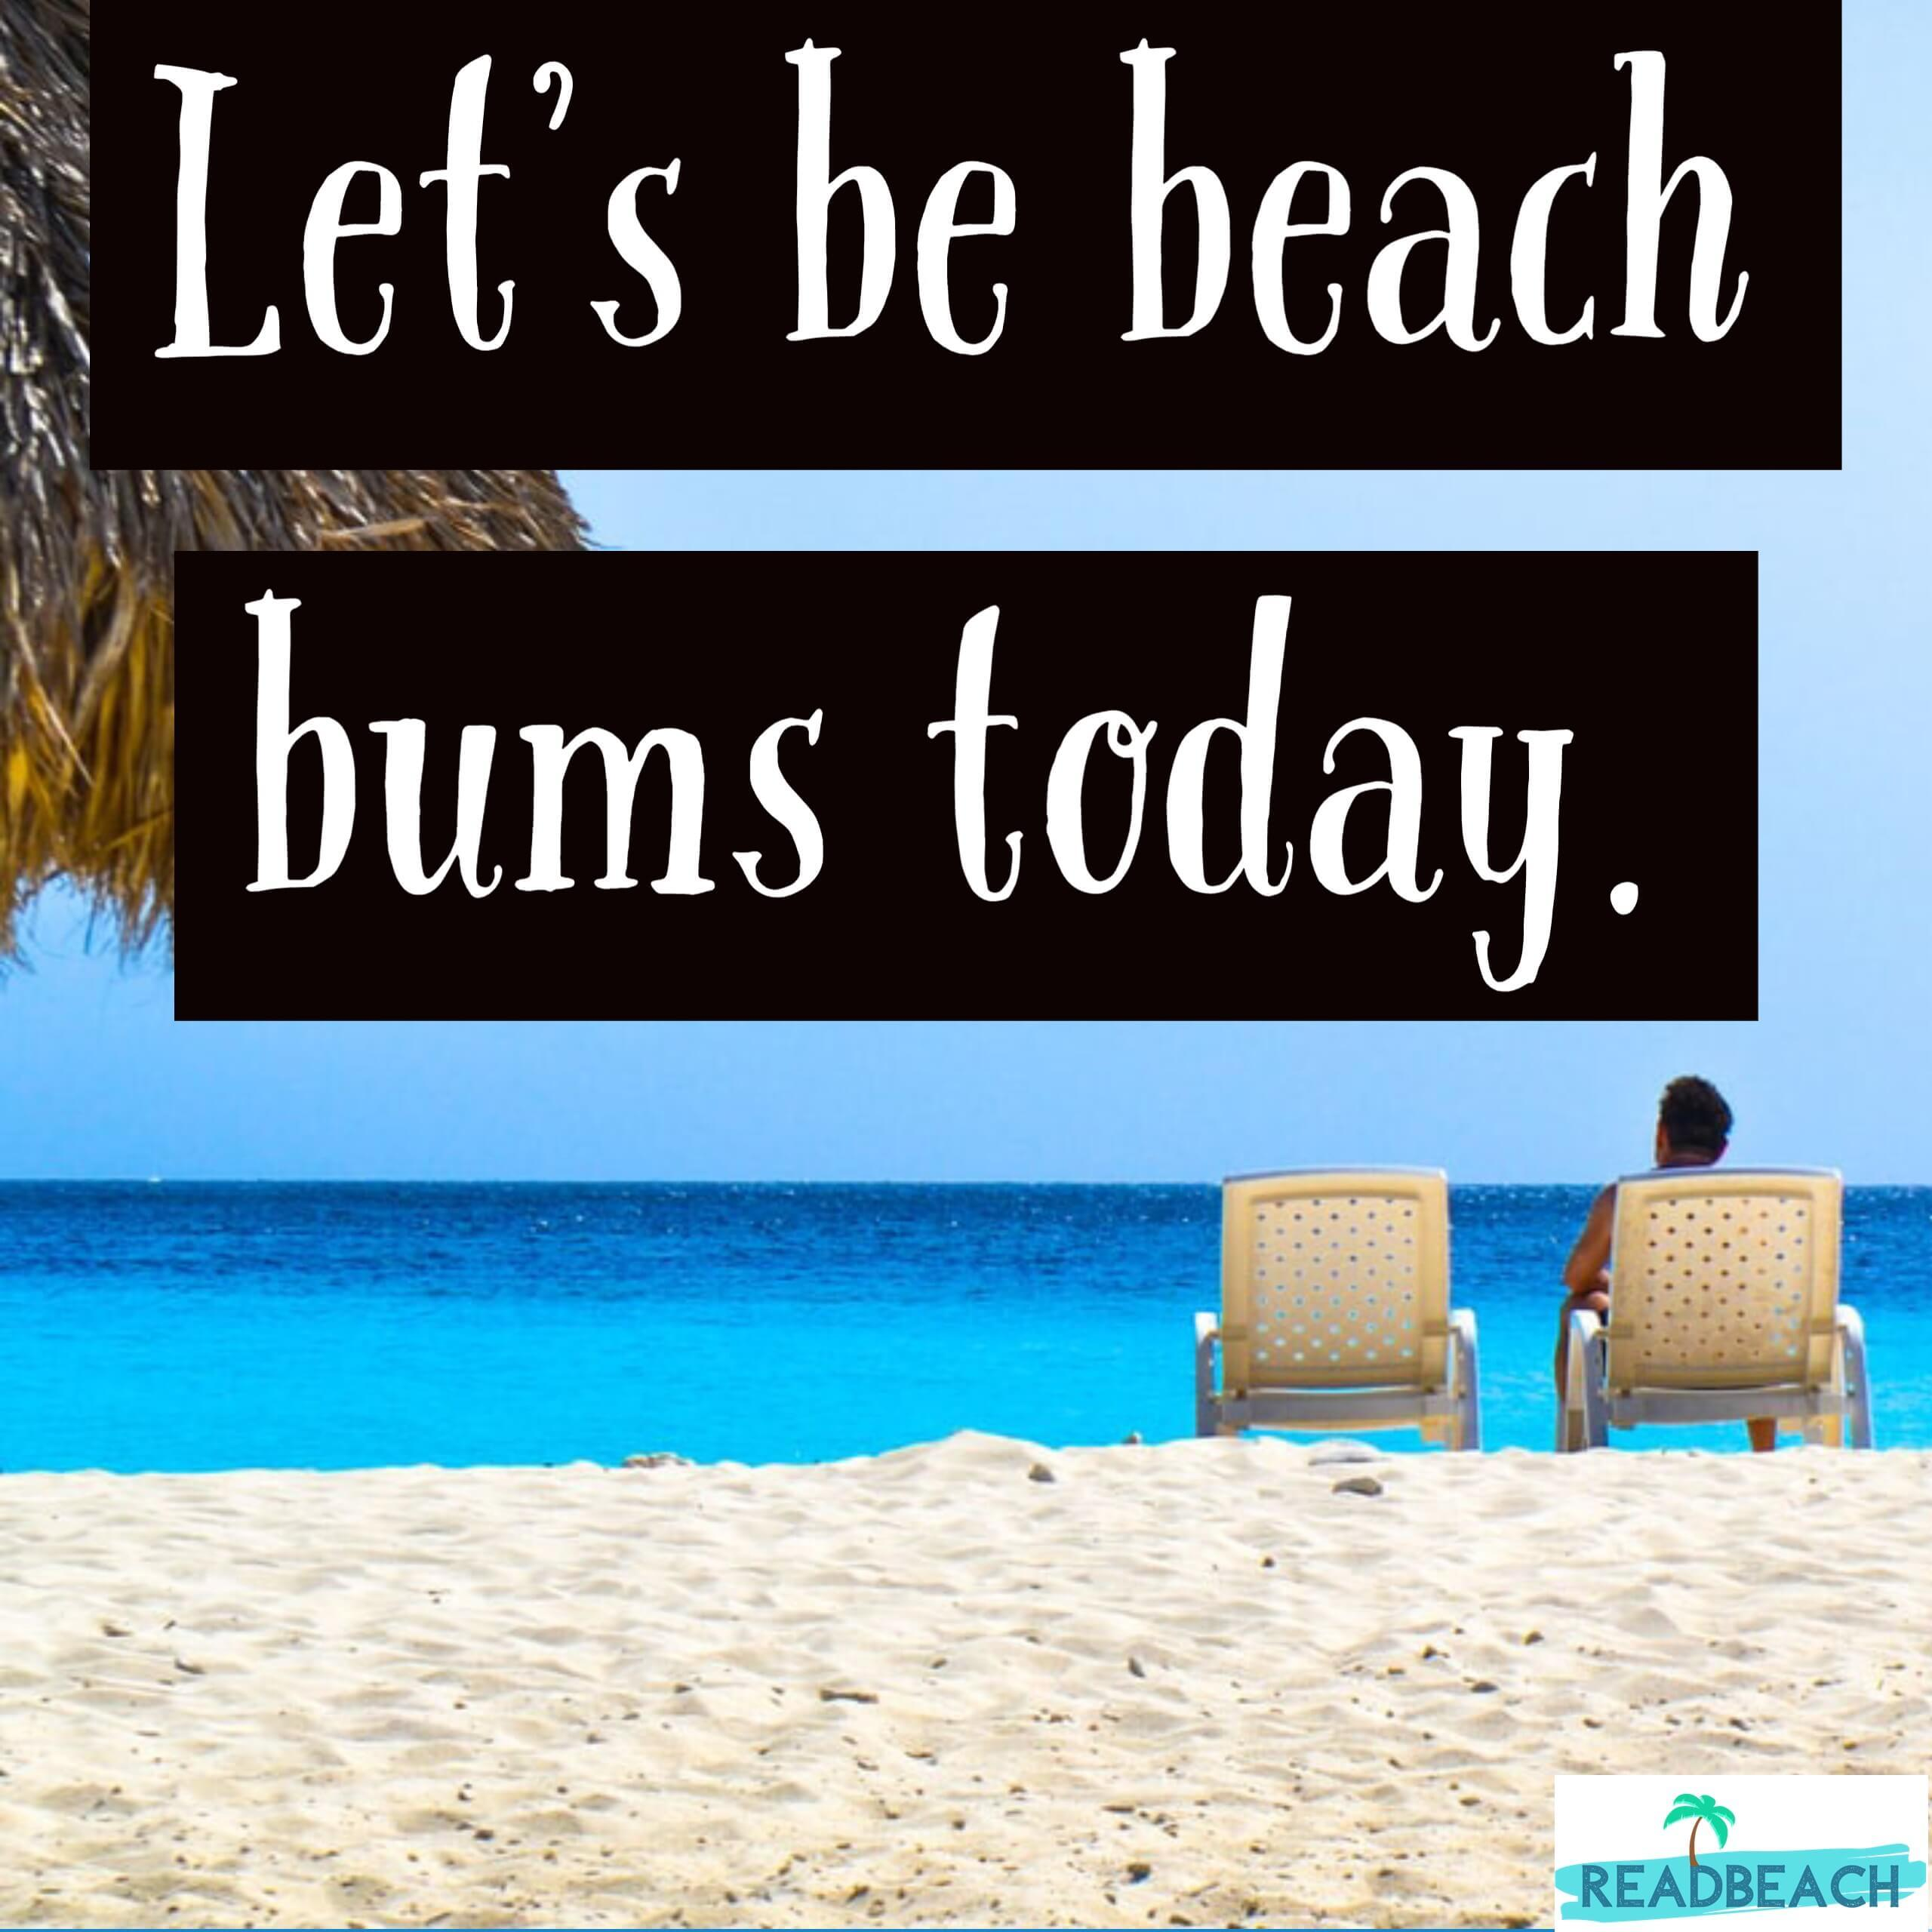 2 Bum Quotes - Let's be beach bums today.